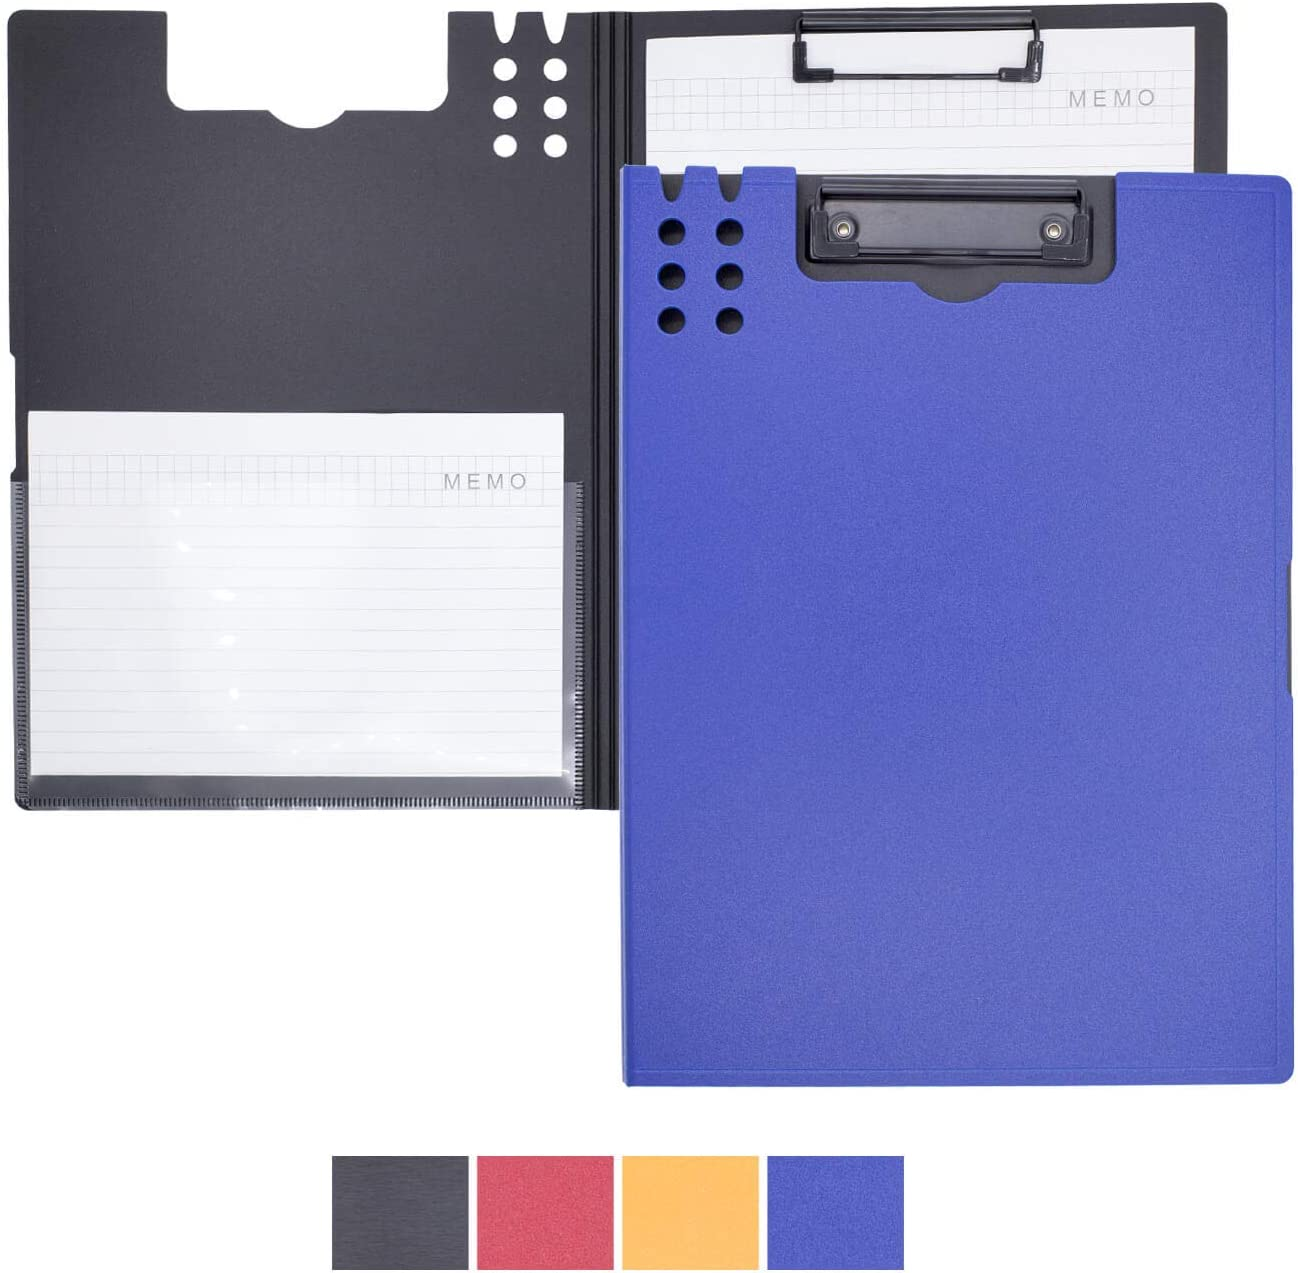 Clipboard with Storage Flip Folder Clip Boards,Plastic Clipboards for Nurses with Pocket,Storage Clipboard Suitable for All Professions Nurse Clipboard/Business Office/Truck Driver.(DarkBlue,Frosted)